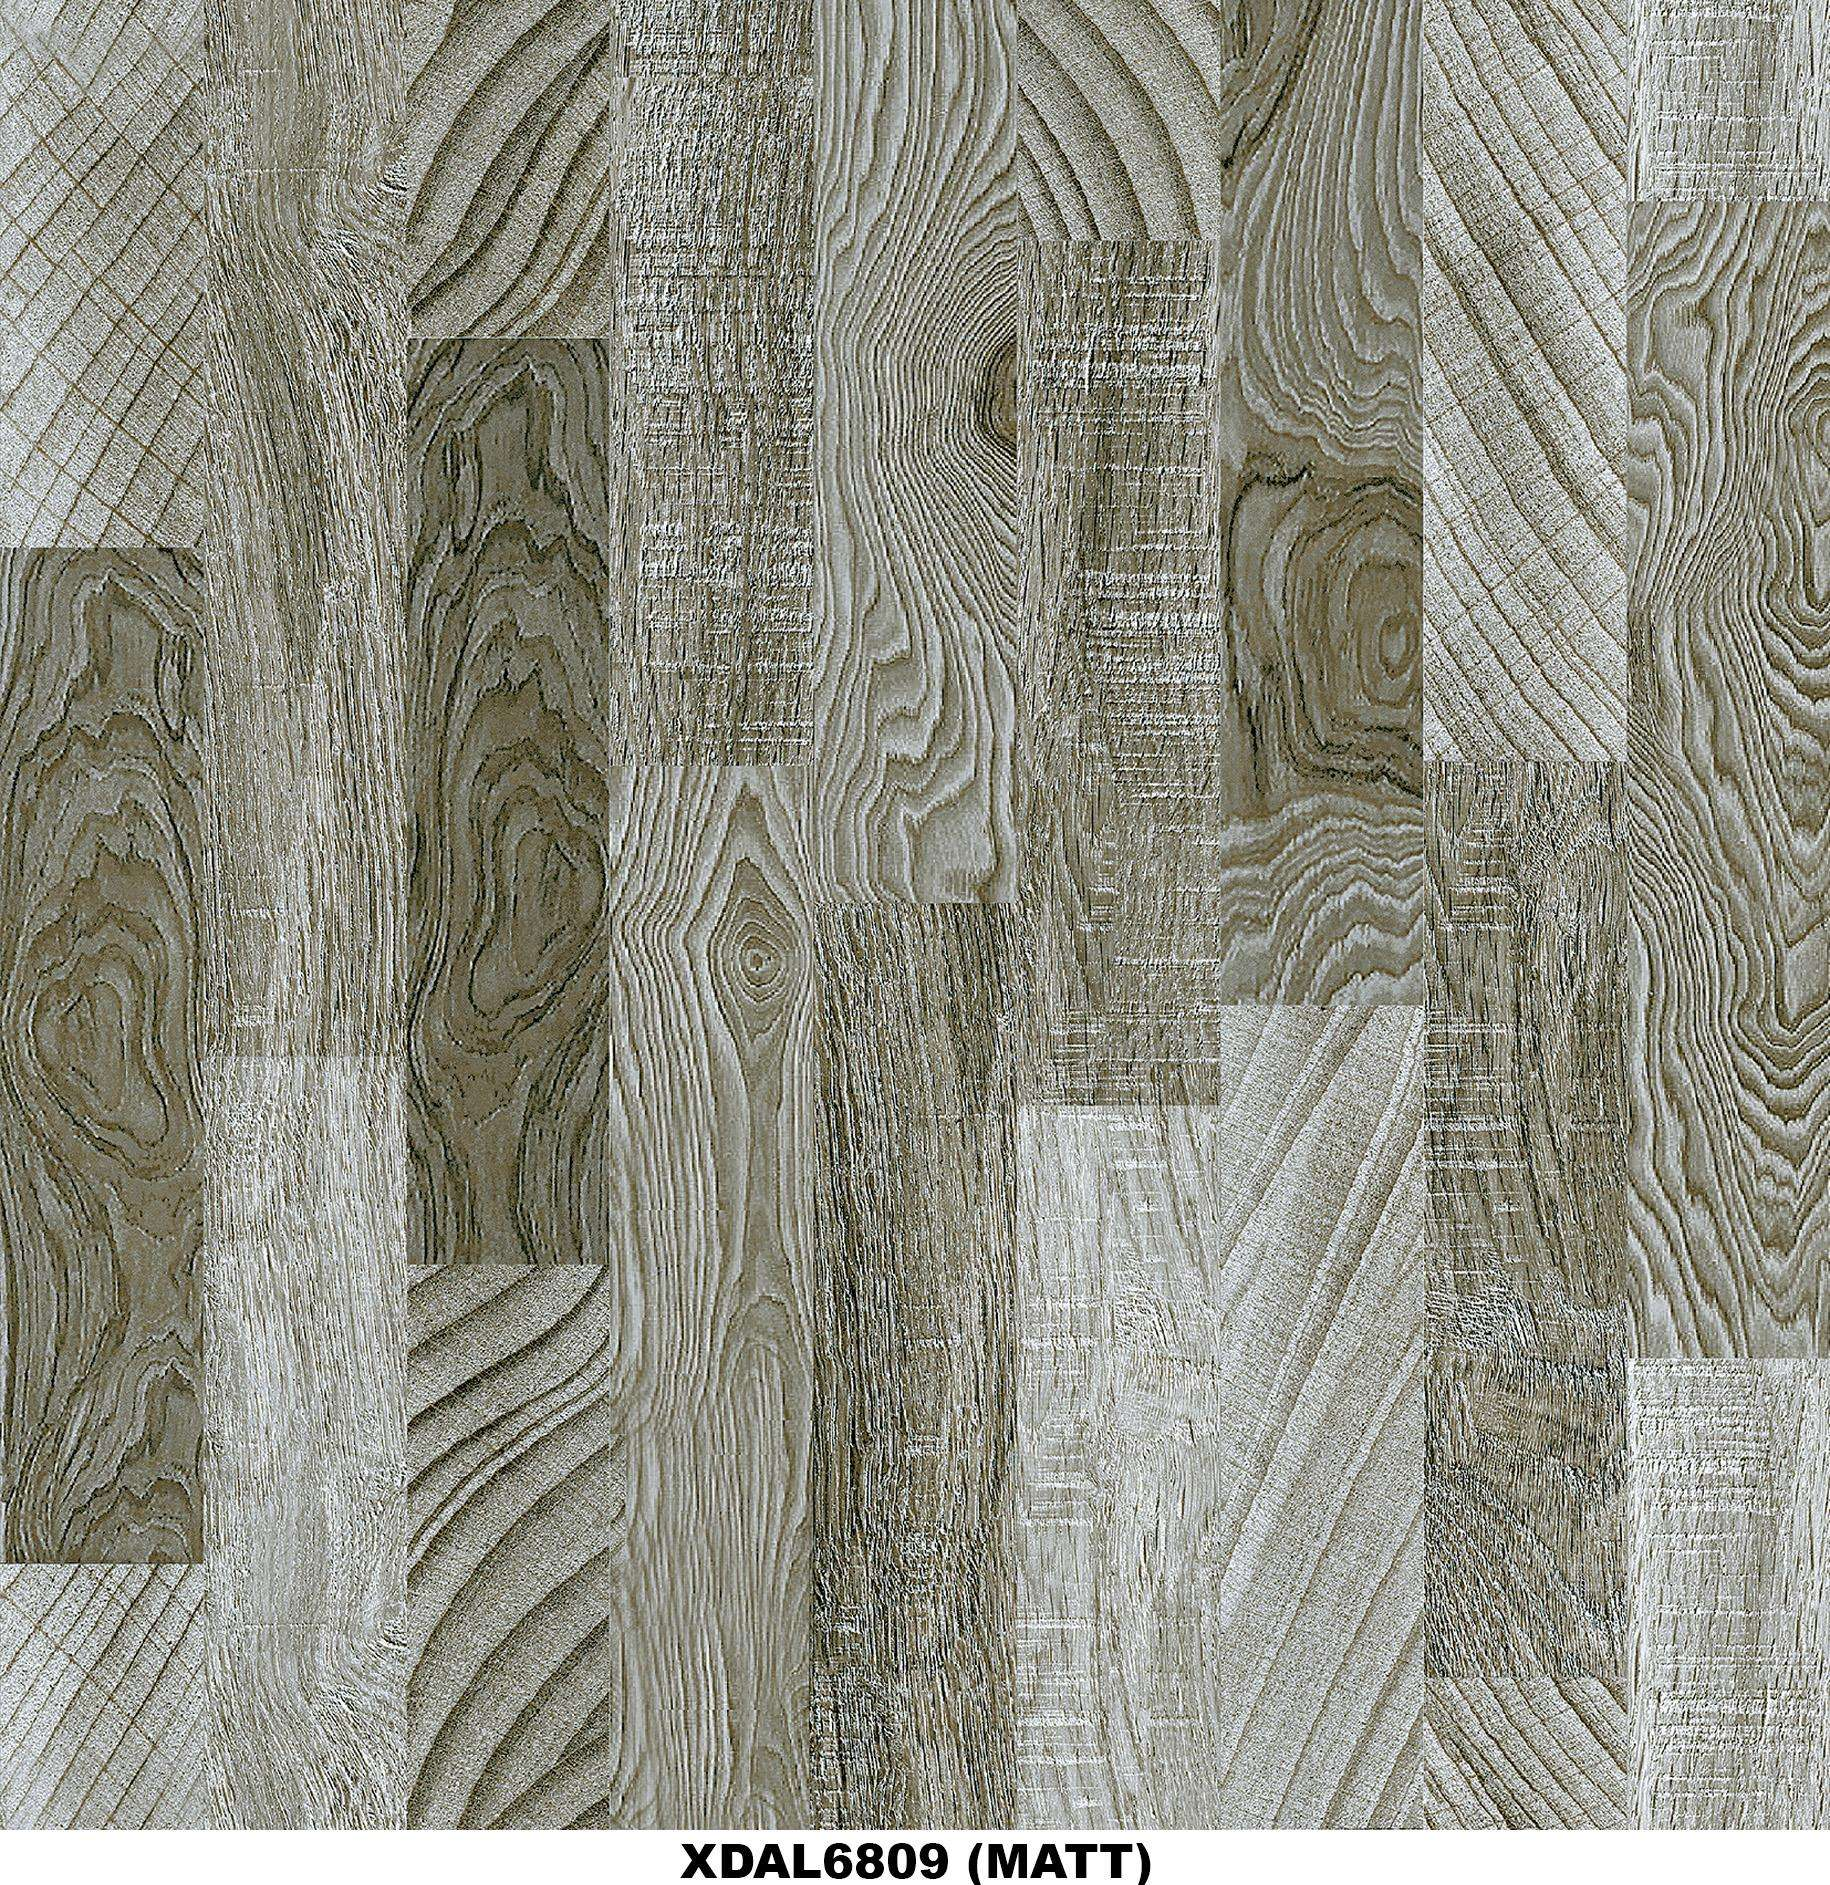 Glazed wooden ceramic floor tiles 600mm x 600mm 60*60cm 600*600mm